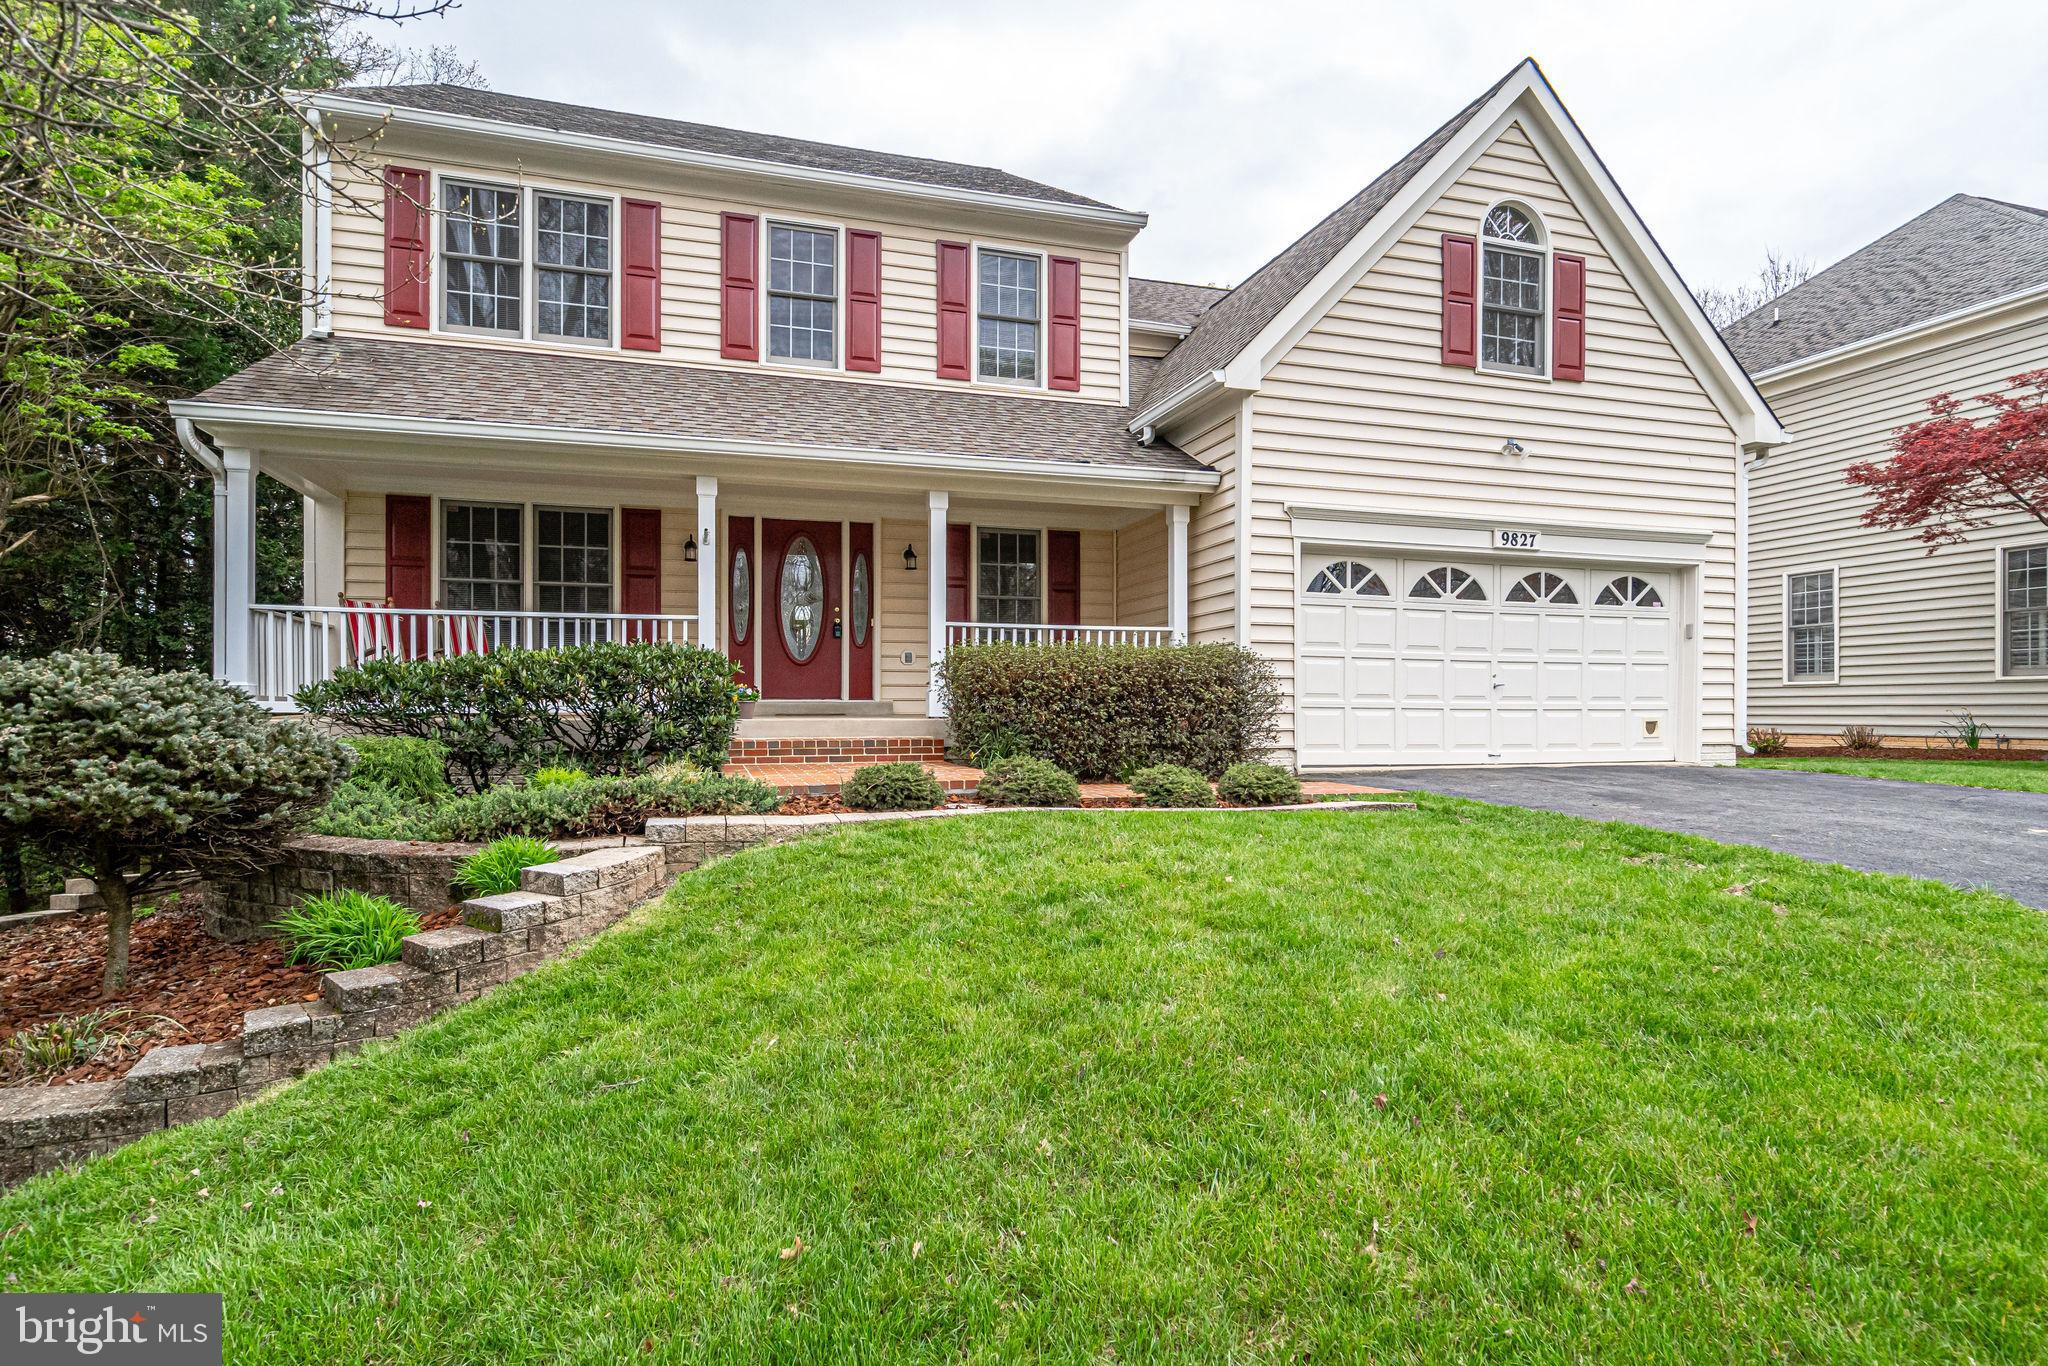 9827 Five Oaks Road, Fairfax, VA 22031